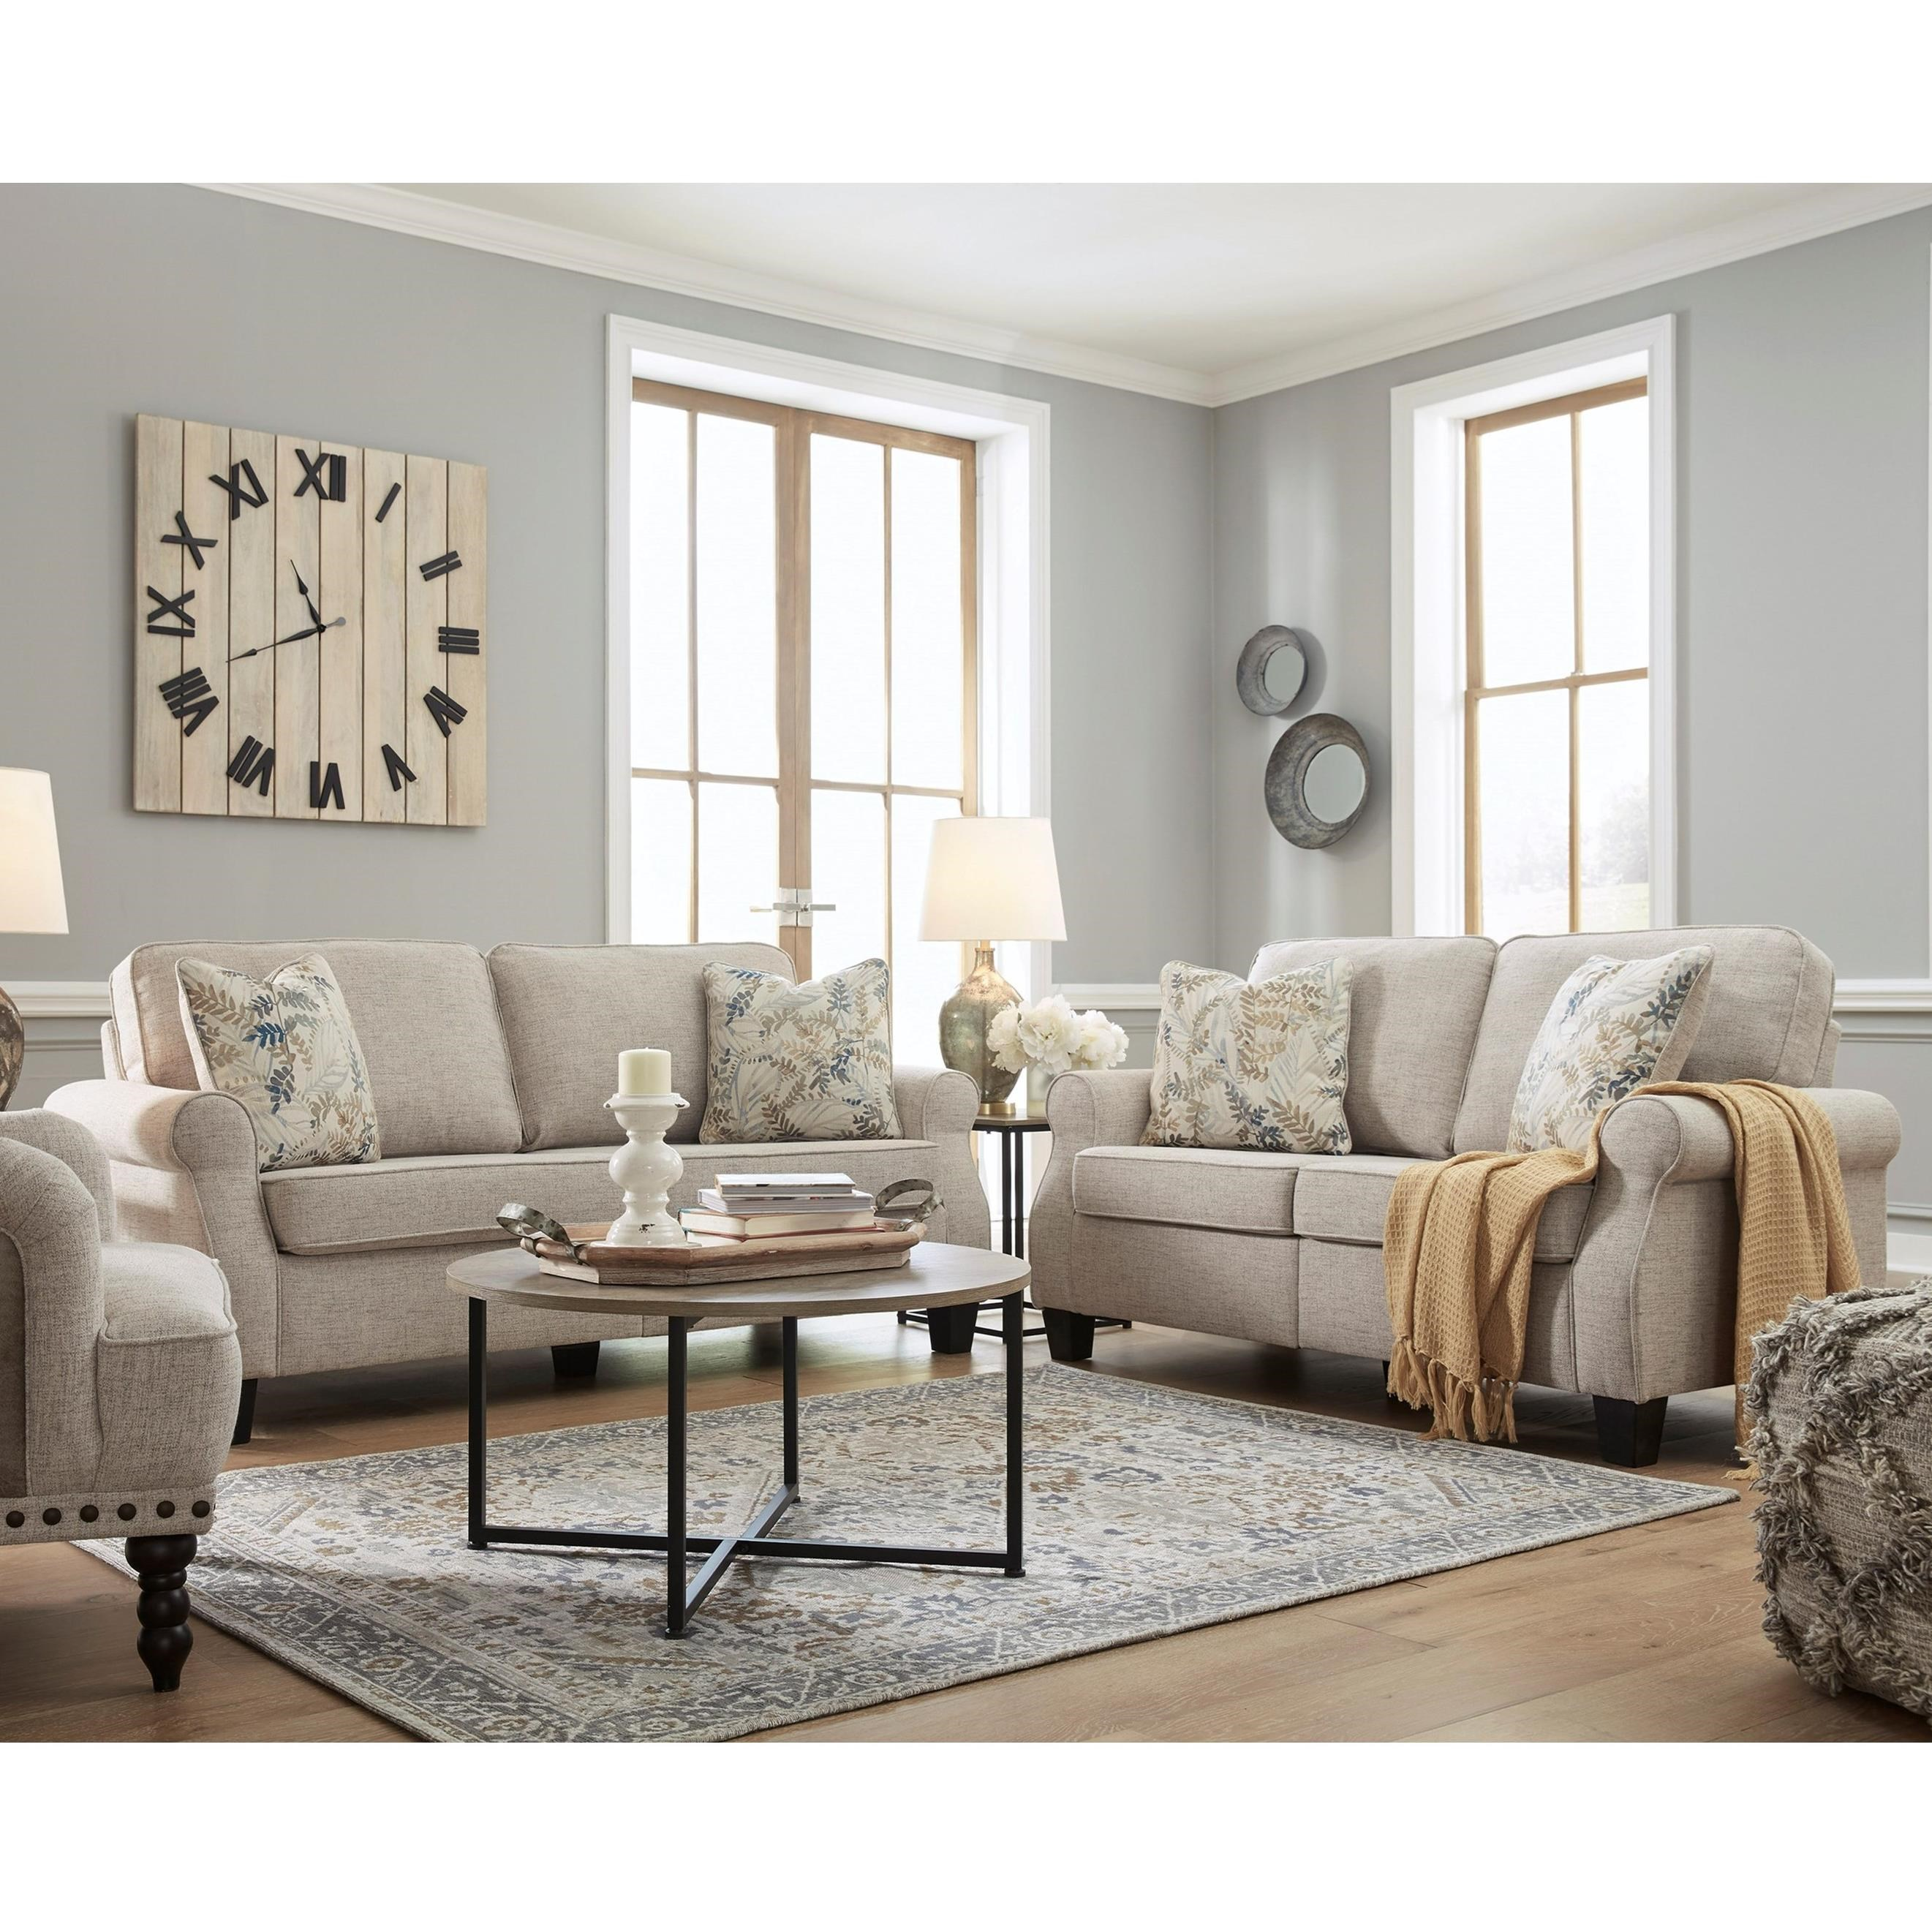 Alessio Living Room Group by Signature Design by Ashley at Home Furnishings Direct